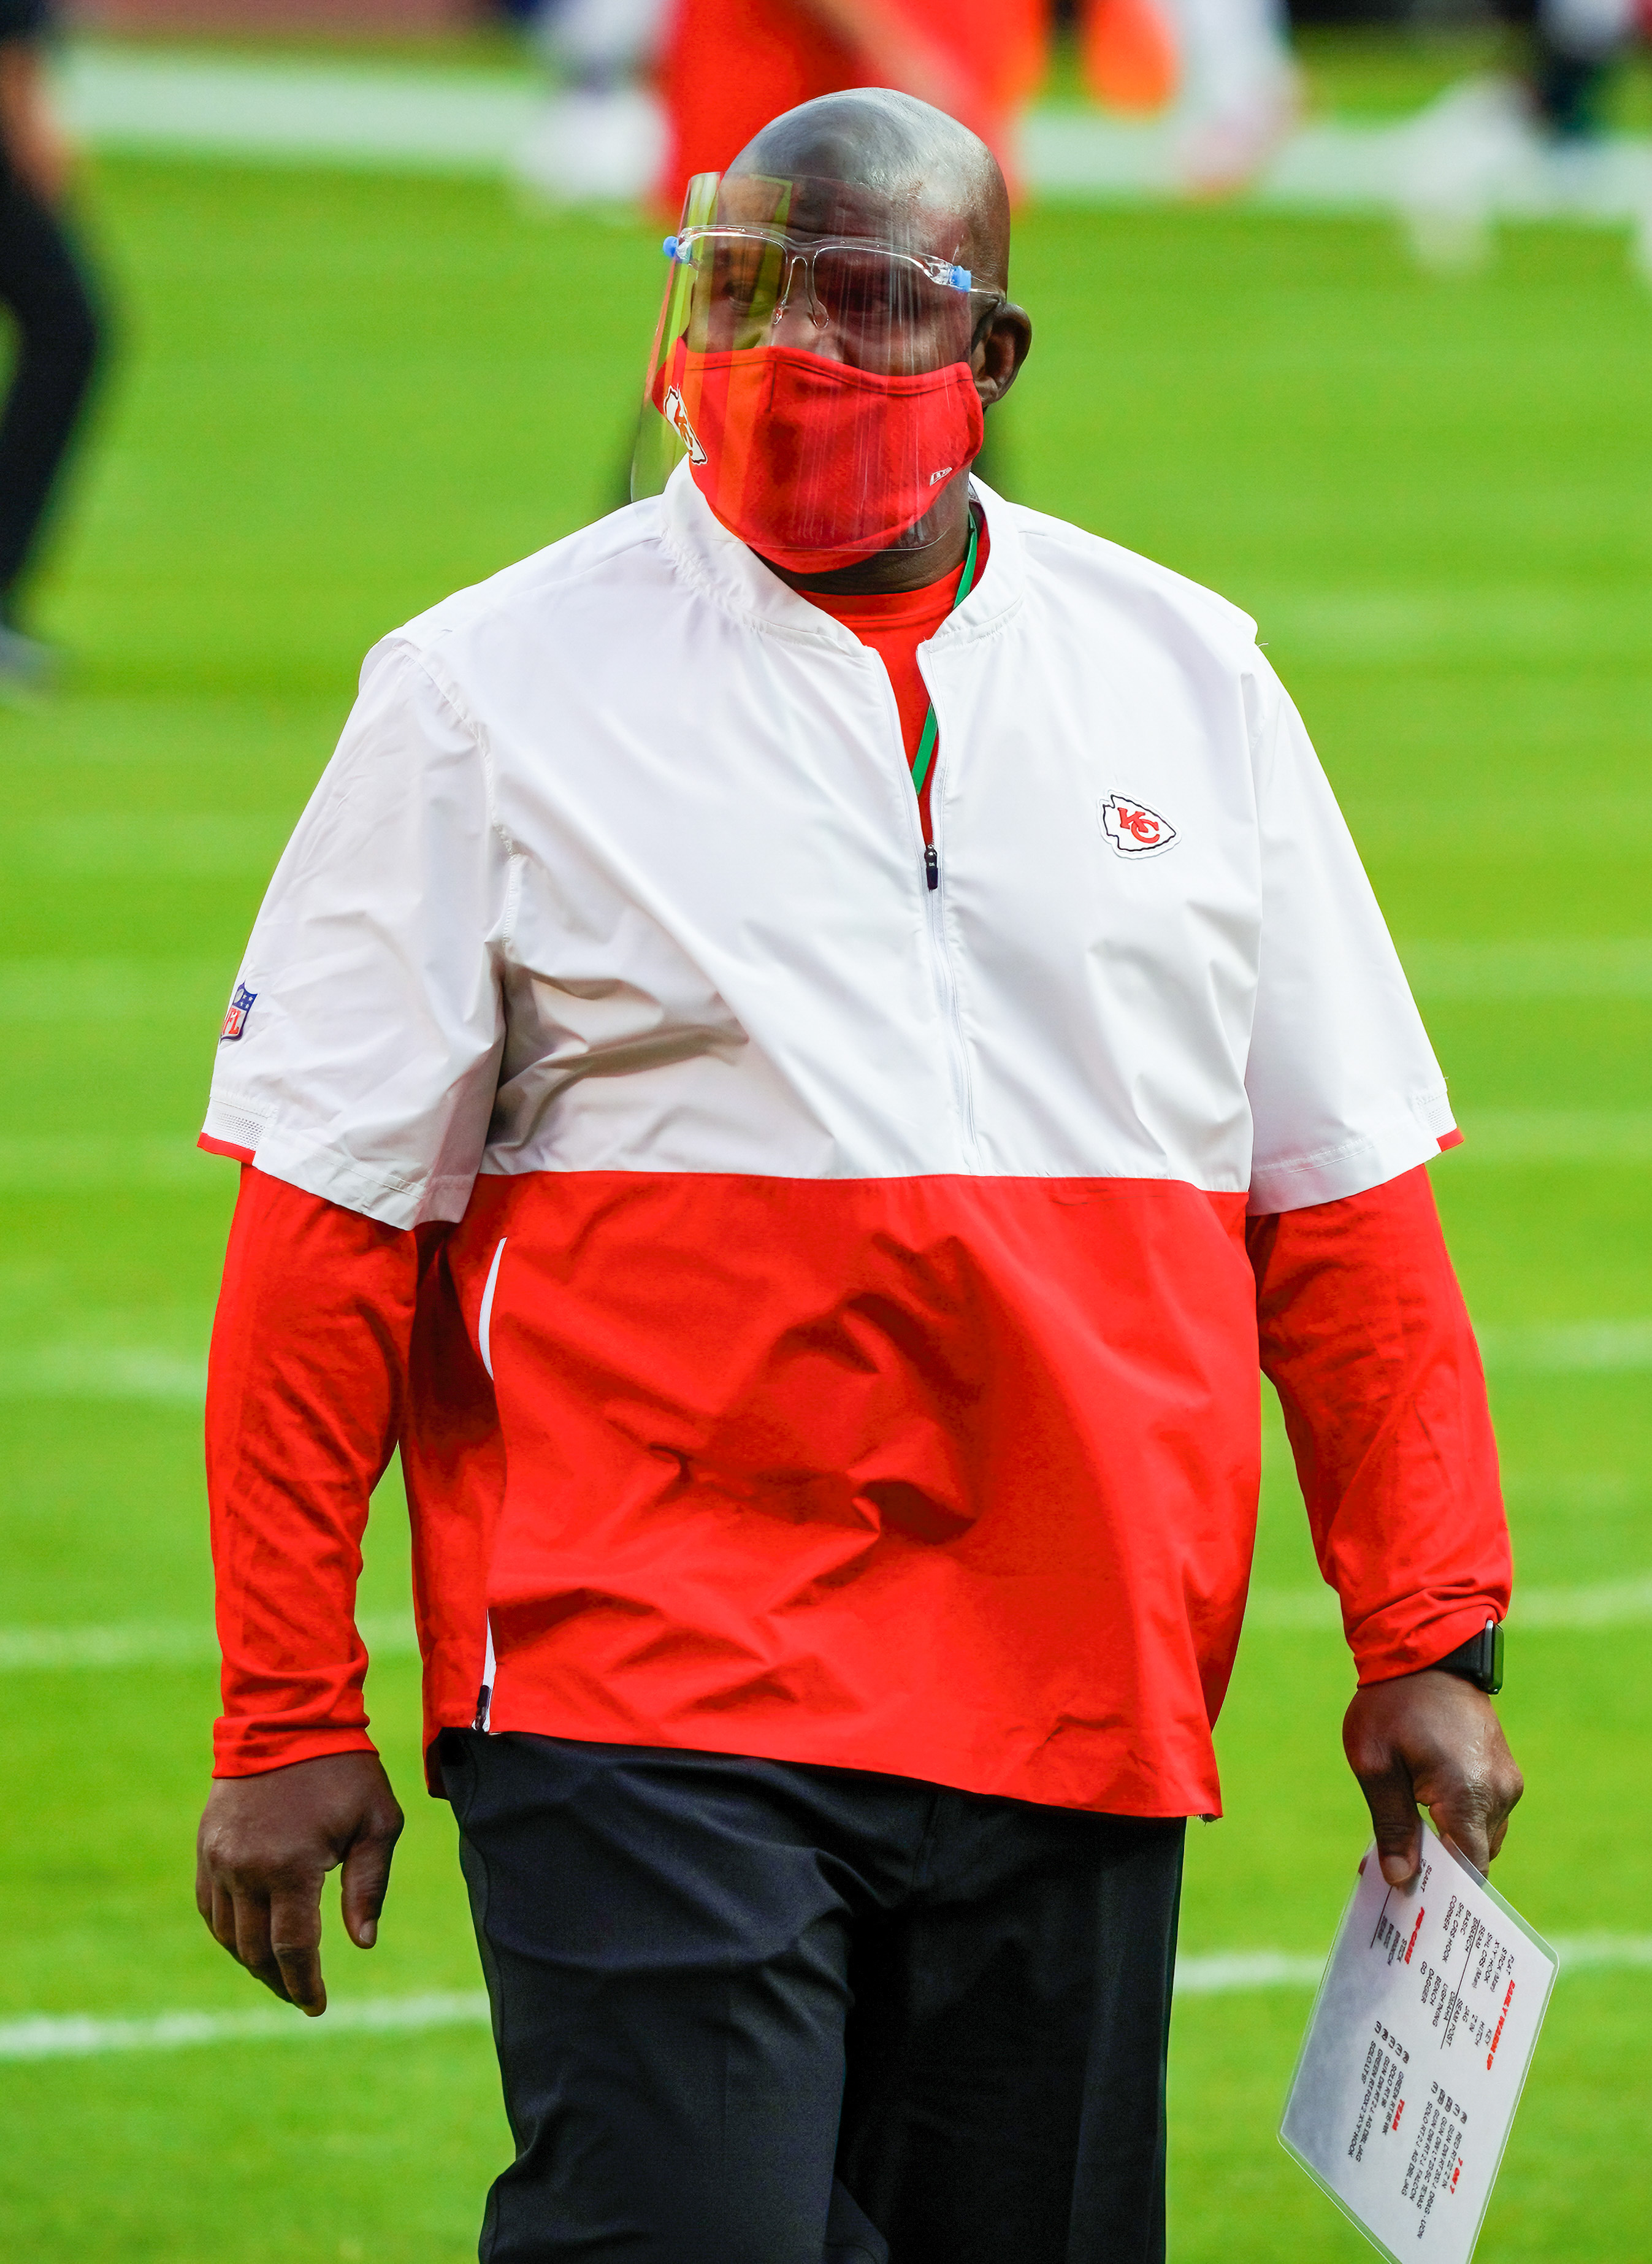 Kansas City, Missouri, USA; Kansas City Chiefs offensive coordinator Eric Bienemy looks on during warmups before the game against the New England Patriots at Arrowhead Stadium.